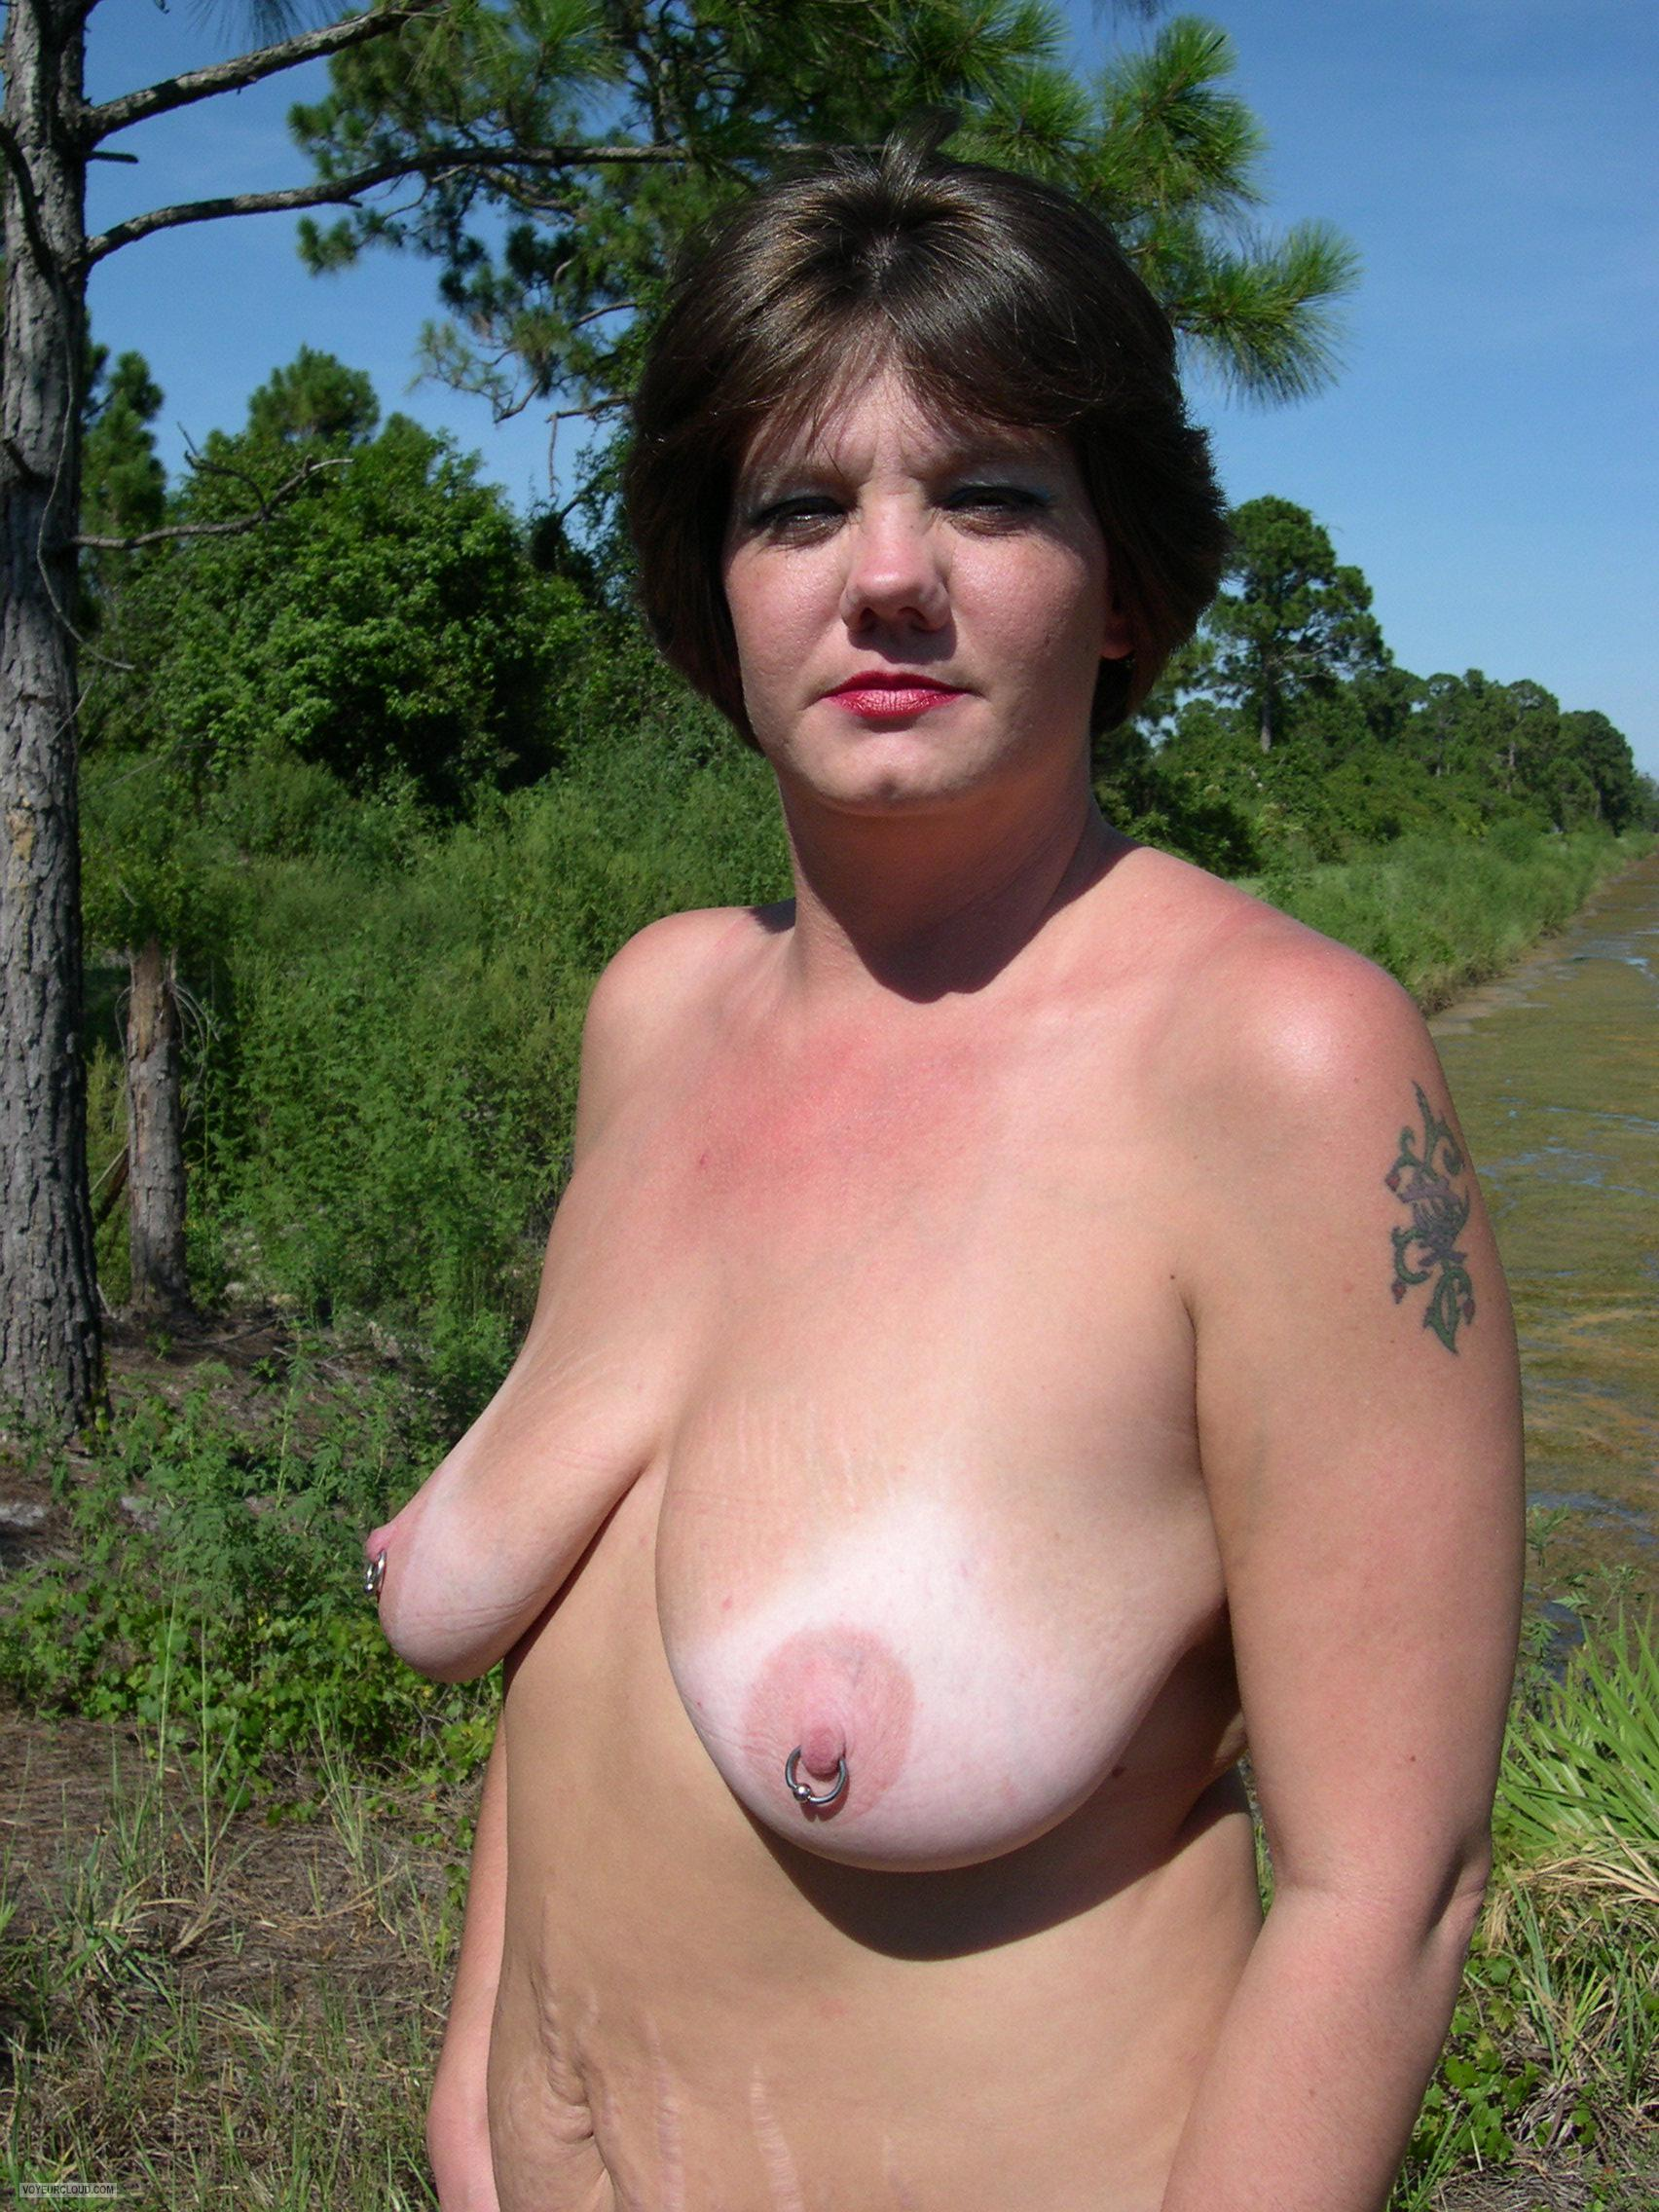 Tit Flash: My Tanlined Big Tits - Topless Tricity from United StatesPierced Nipples